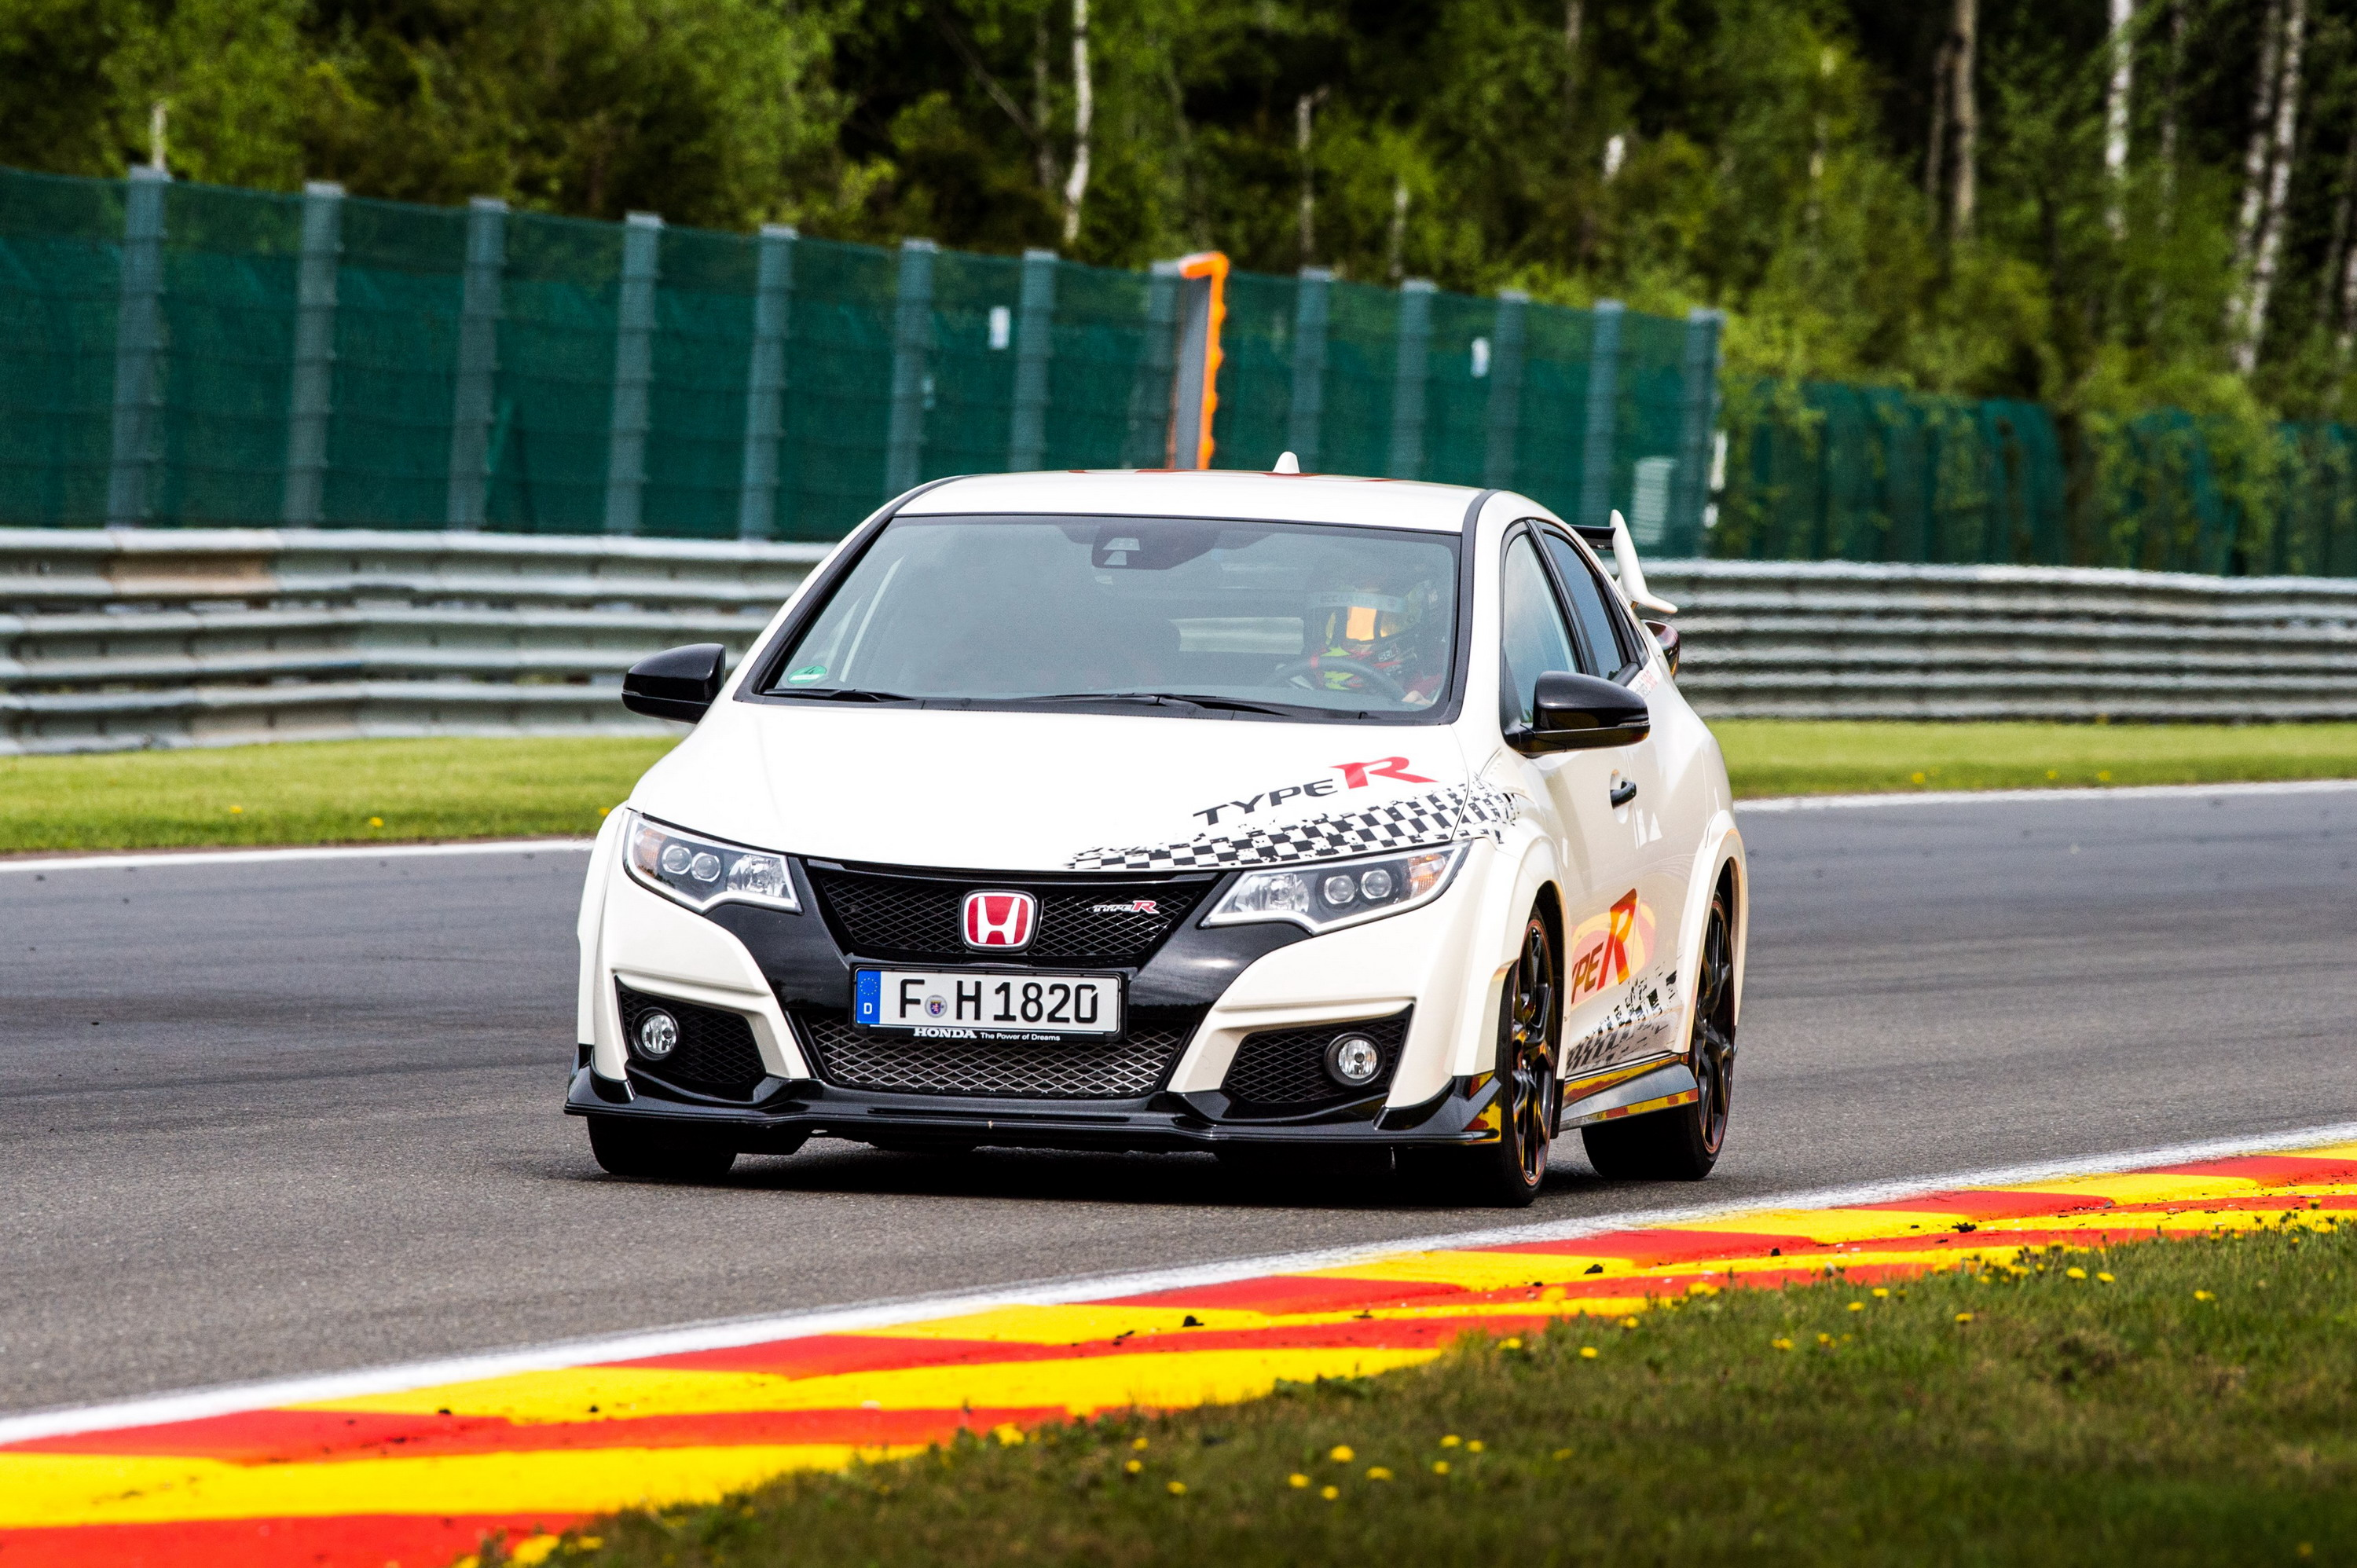 The 6 Fastest Front-wheel Drive Cars Around The Nurburgring